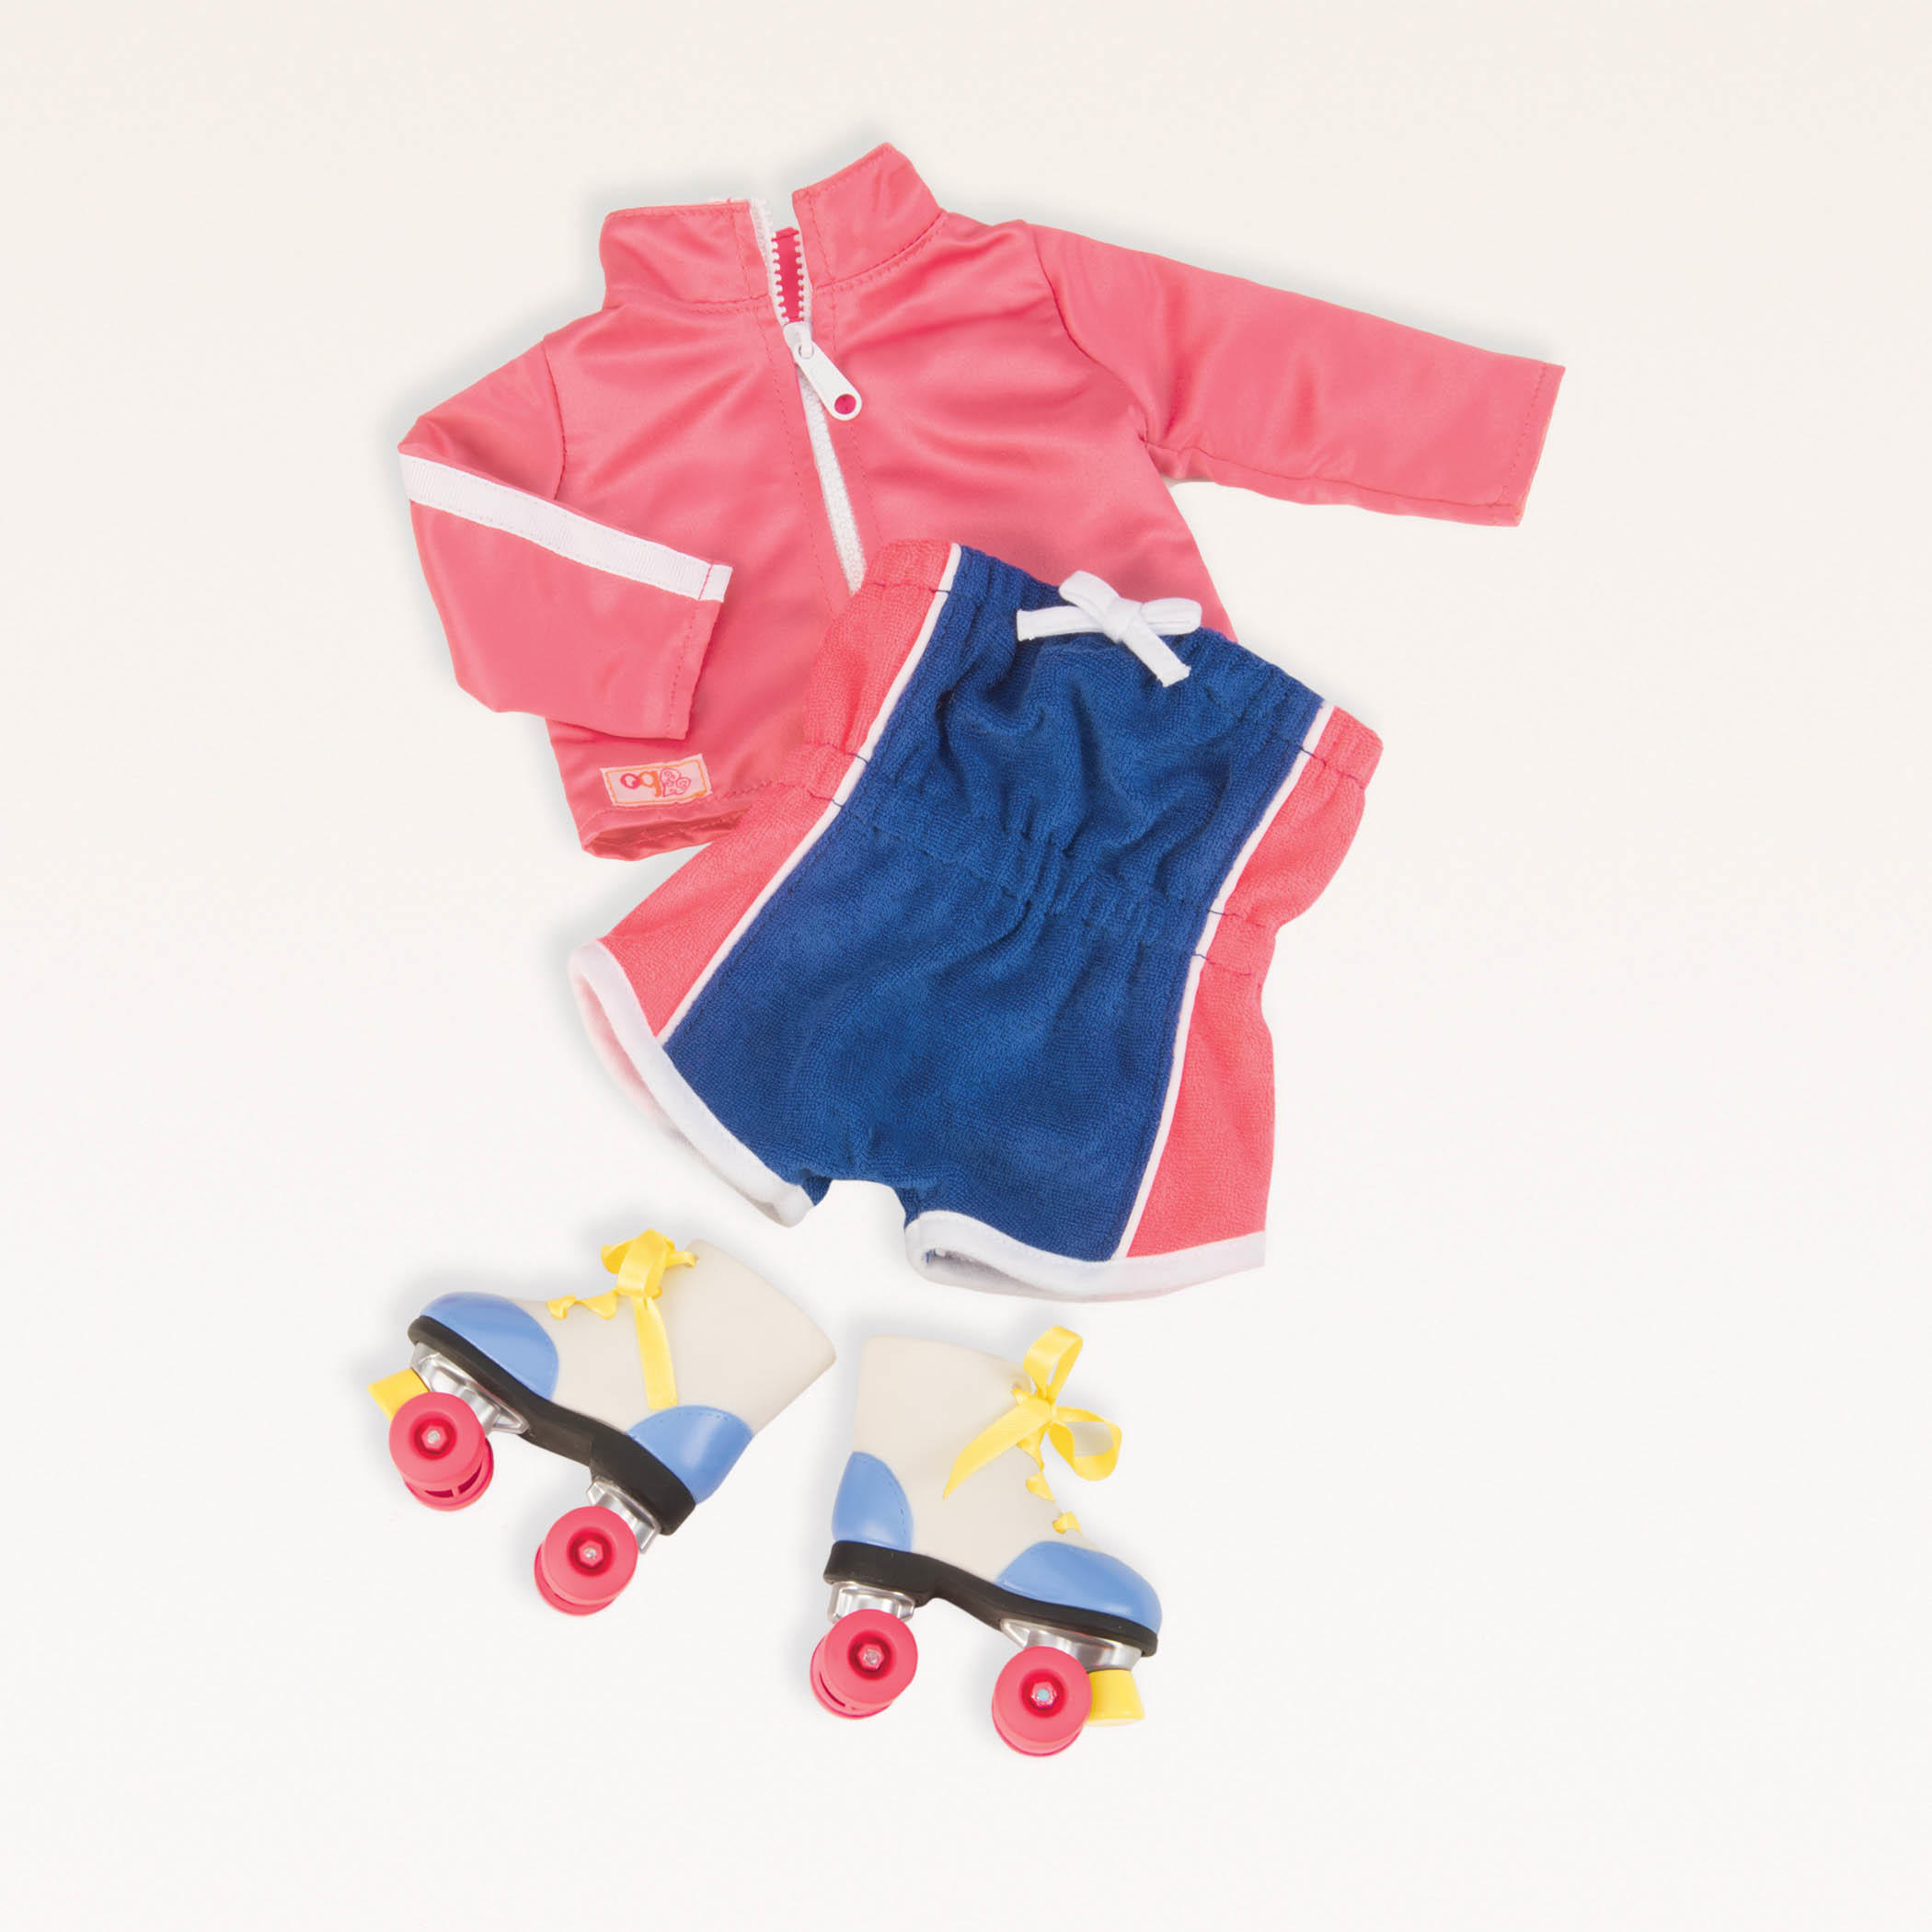 dolls roller skate outfit